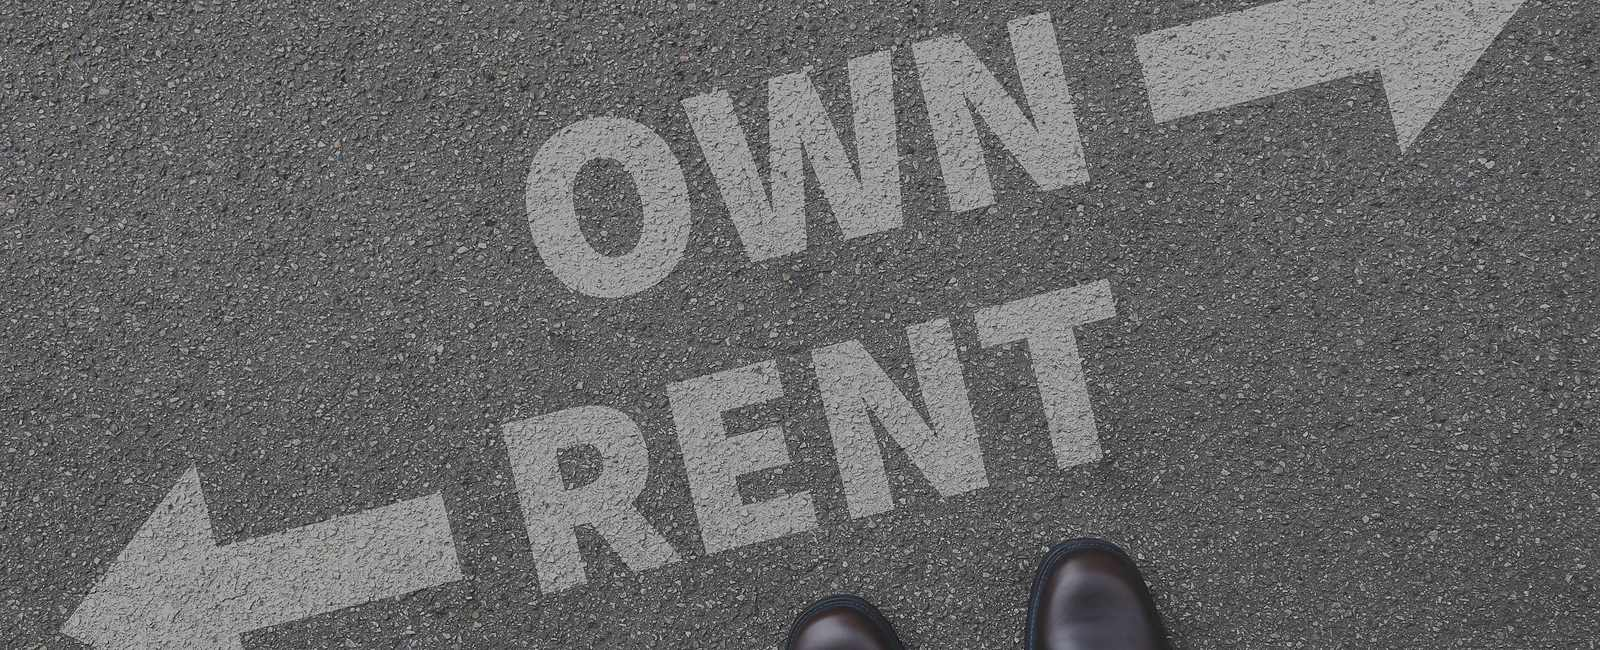 different paths for rent or own